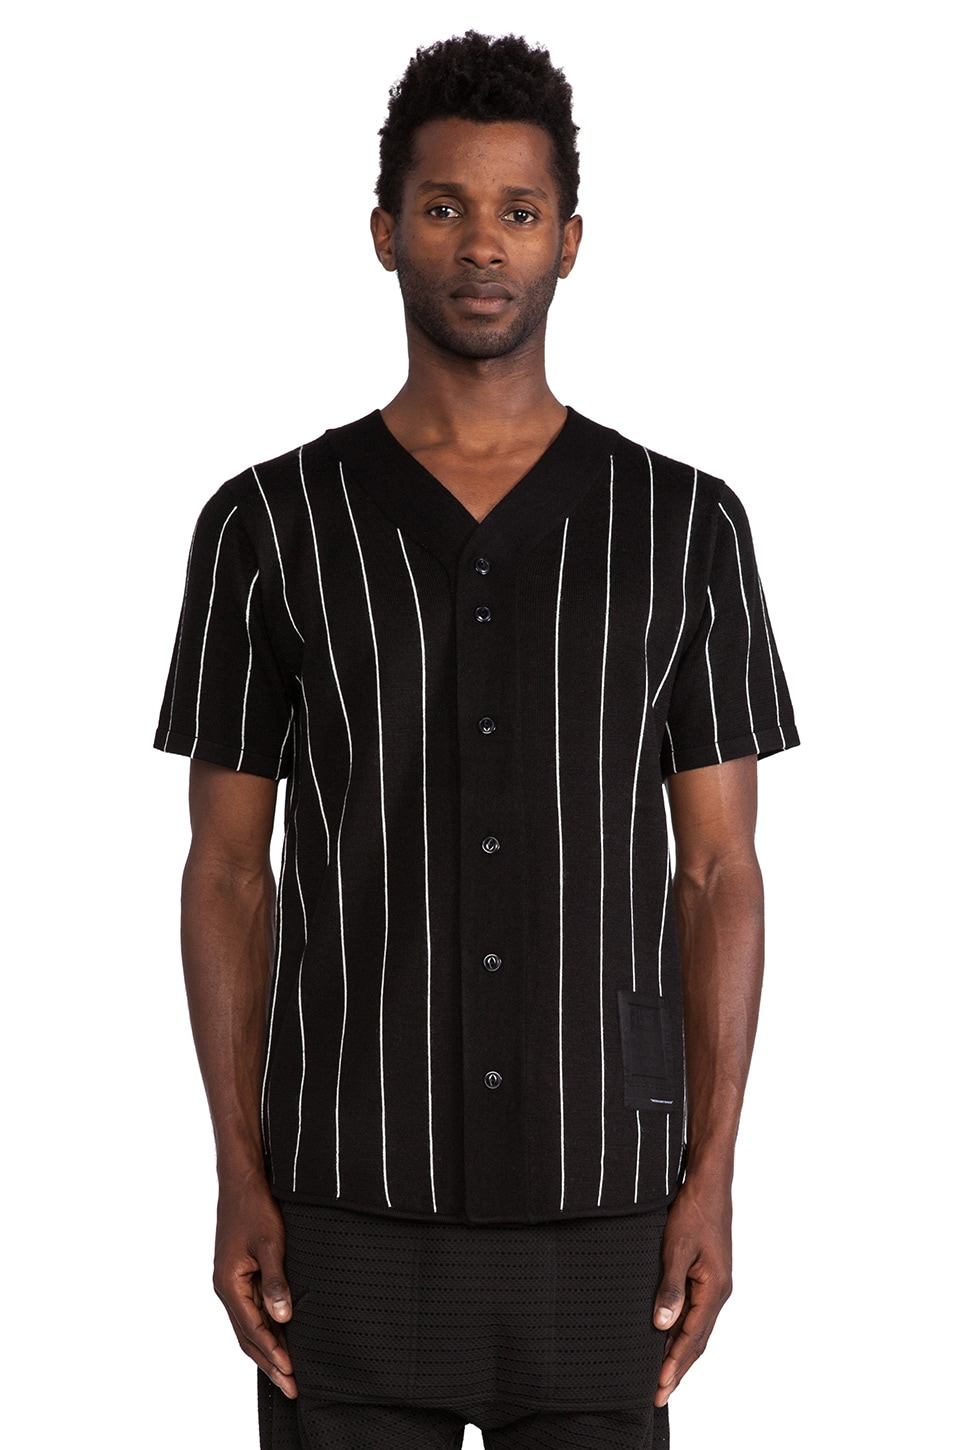 Black Scale La Soule Baseball Jersey in Black